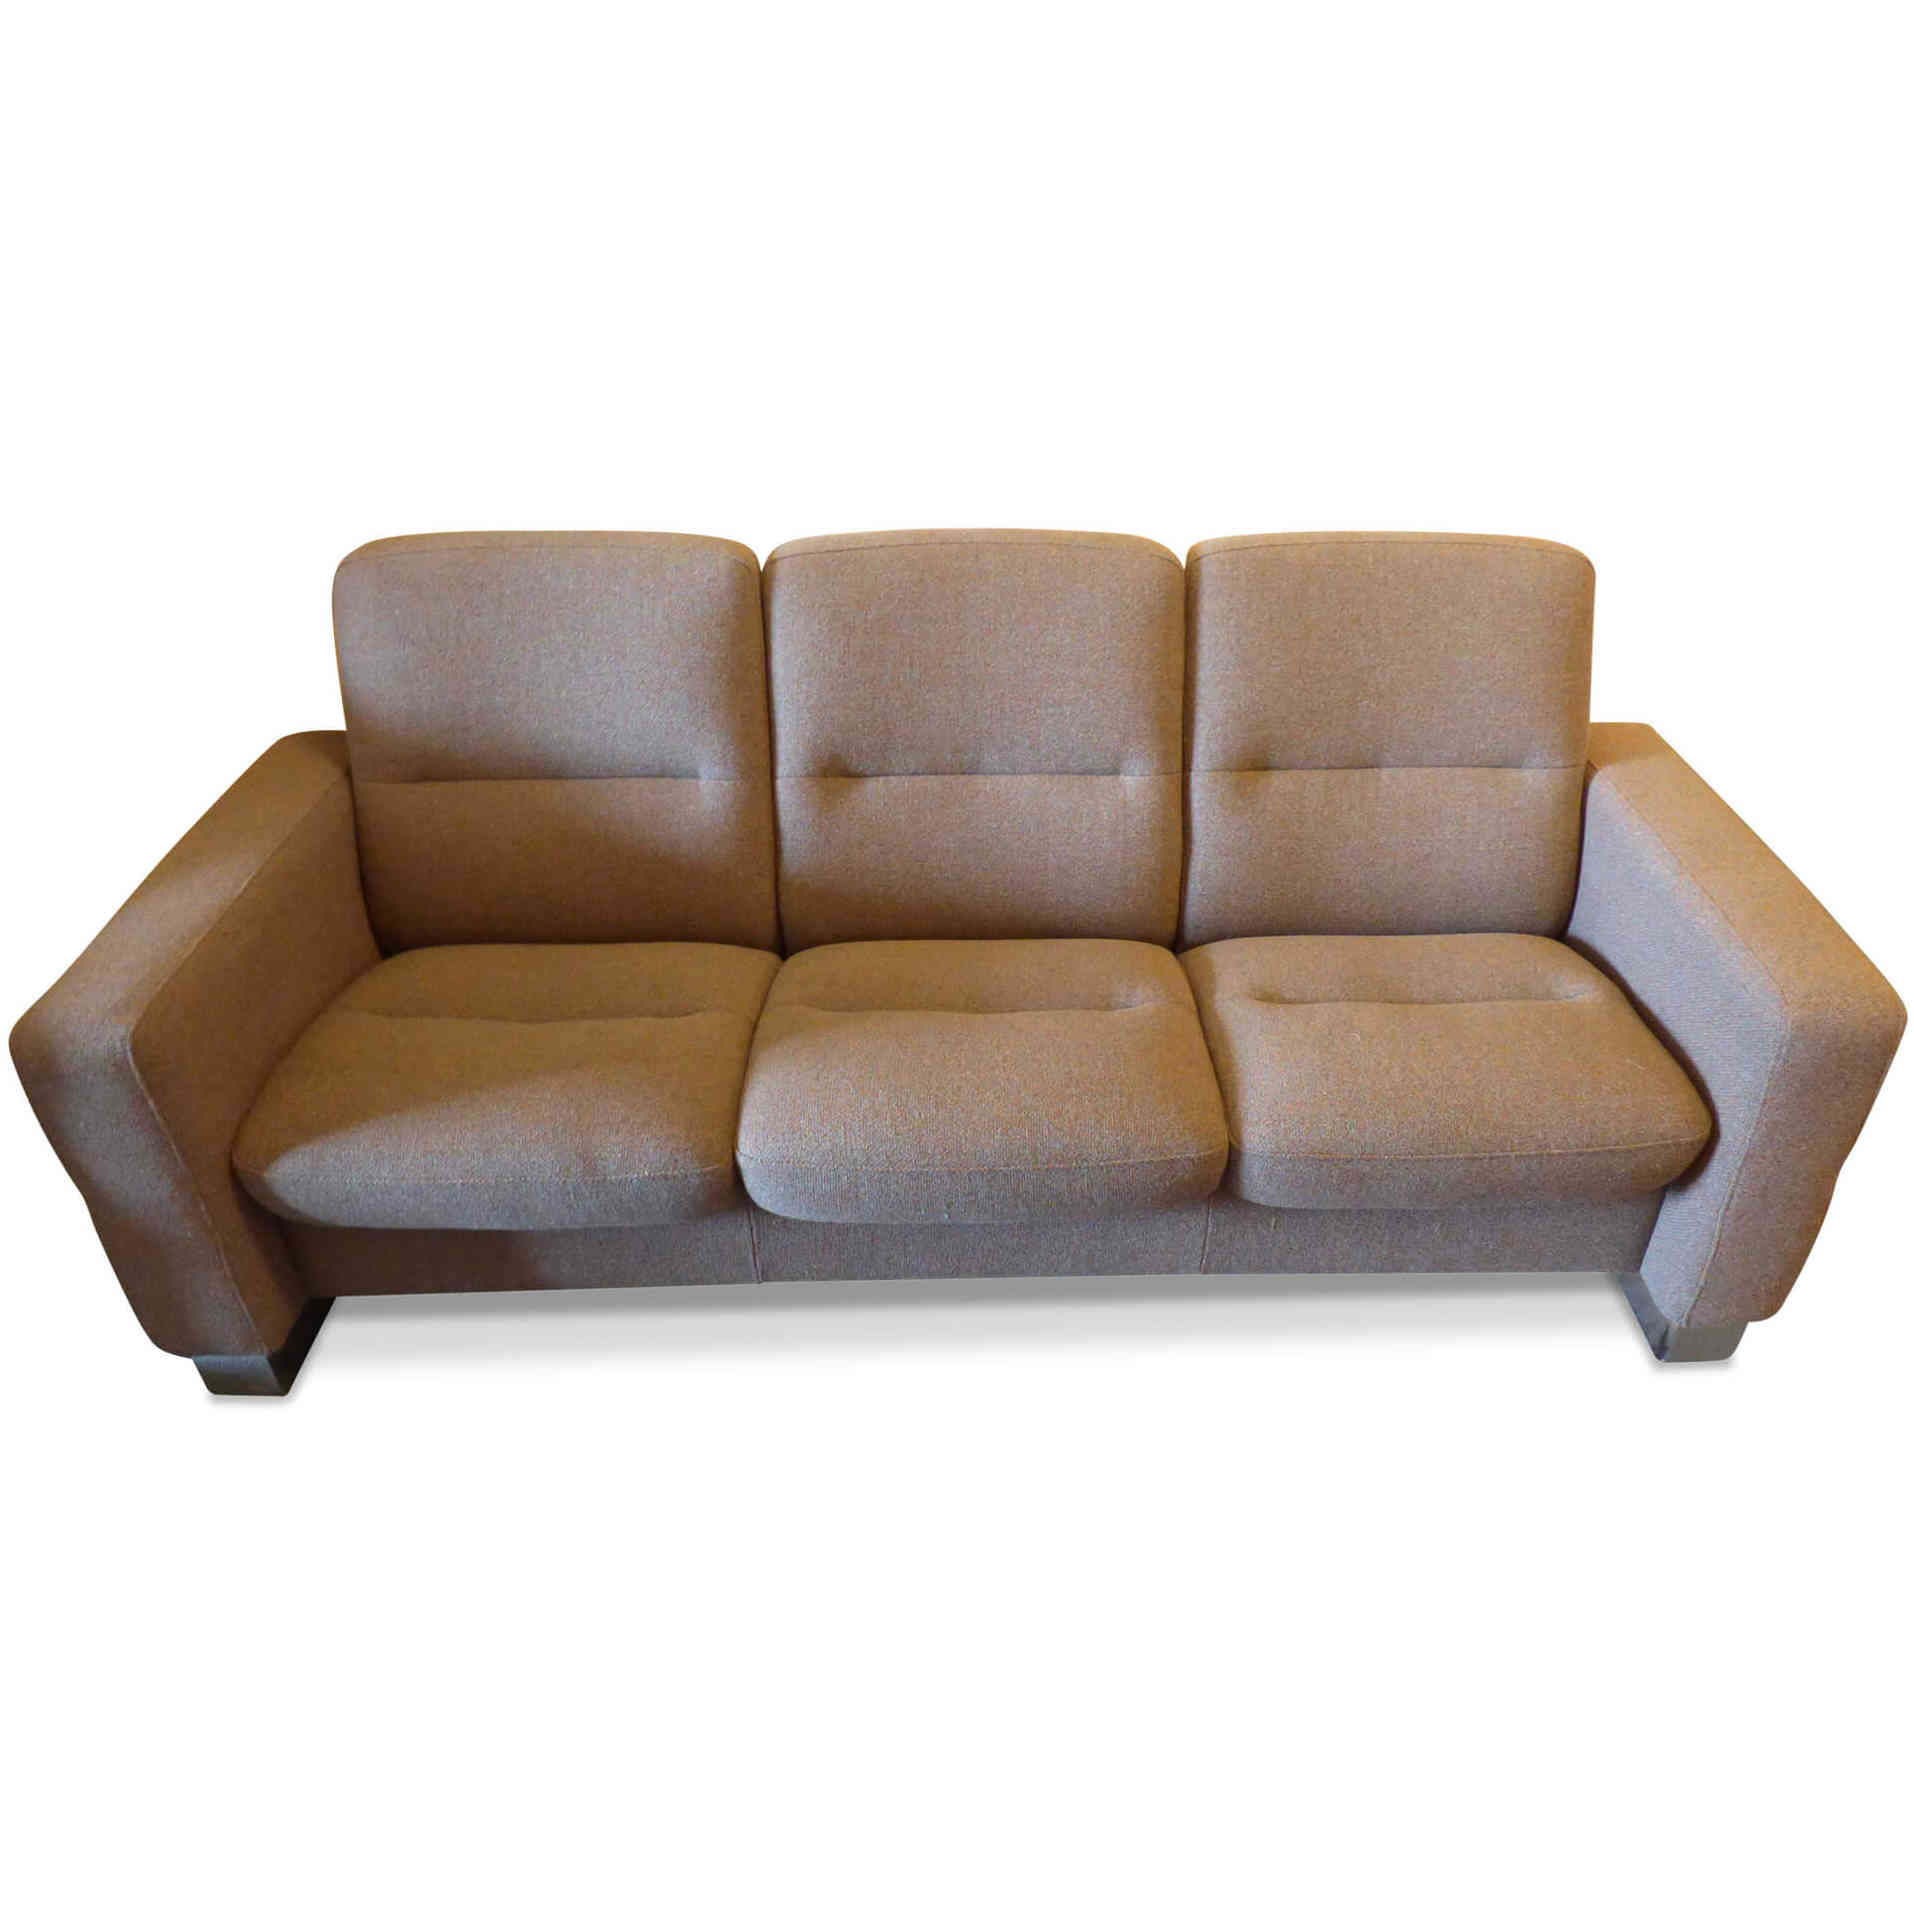 stressless designer sofa wave in cream beige stoff chrom beige chrom ebay. Black Bedroom Furniture Sets. Home Design Ideas